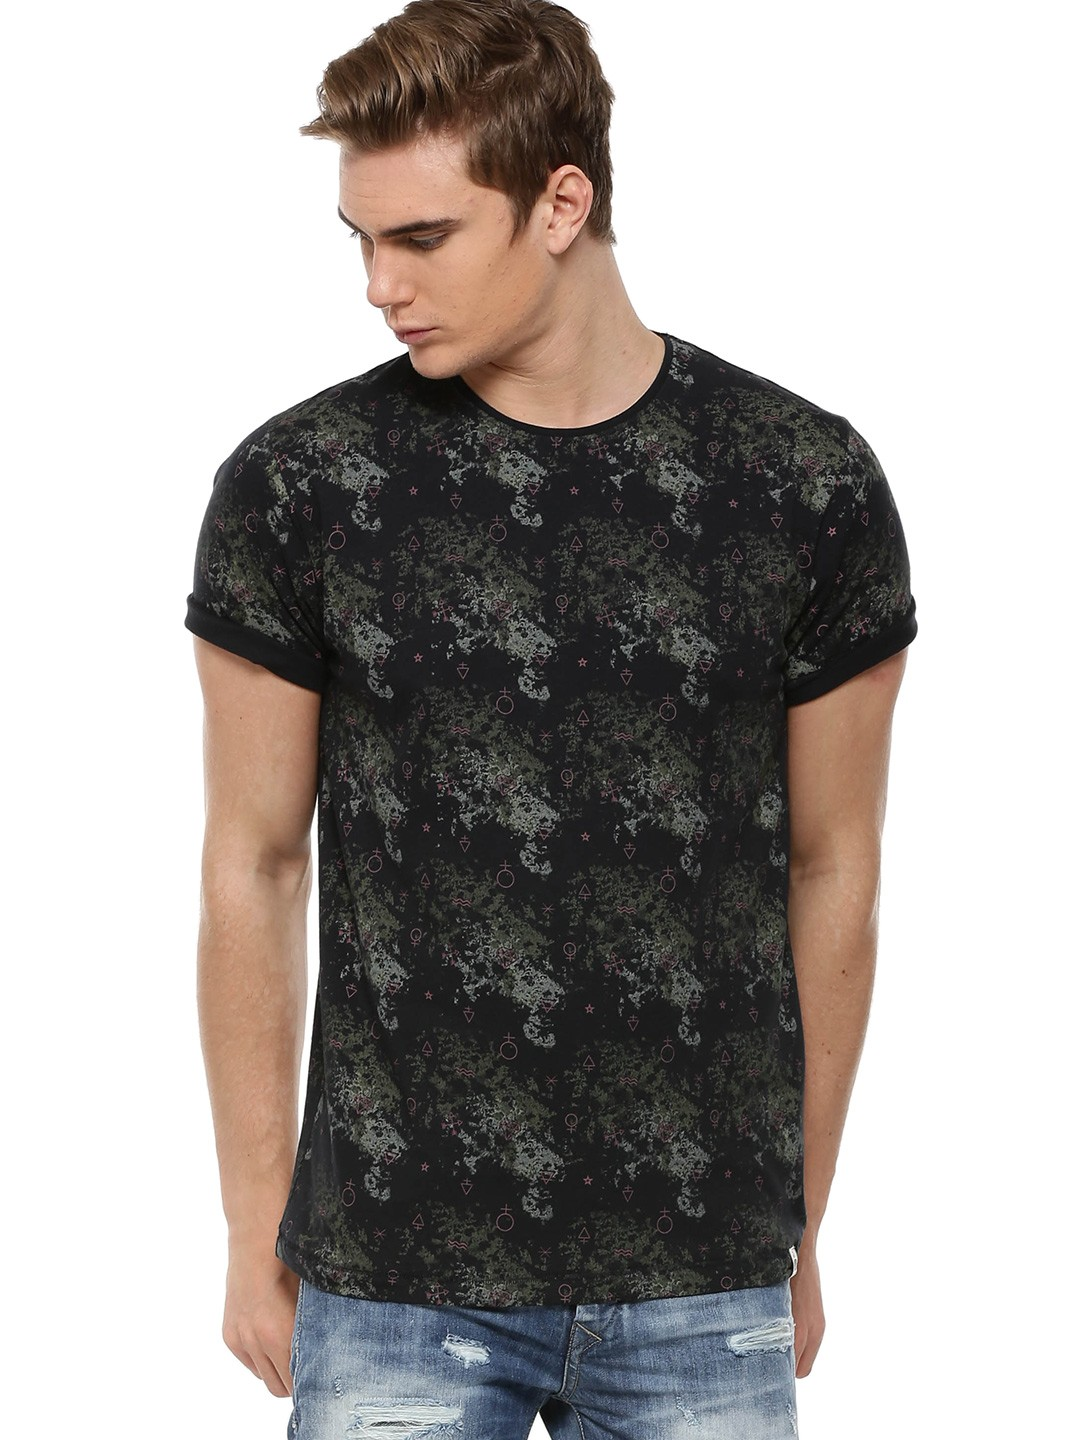 Black t shirt rolled up sleeves - Slub Camo Print T Shirt With Roll Up Sleeves